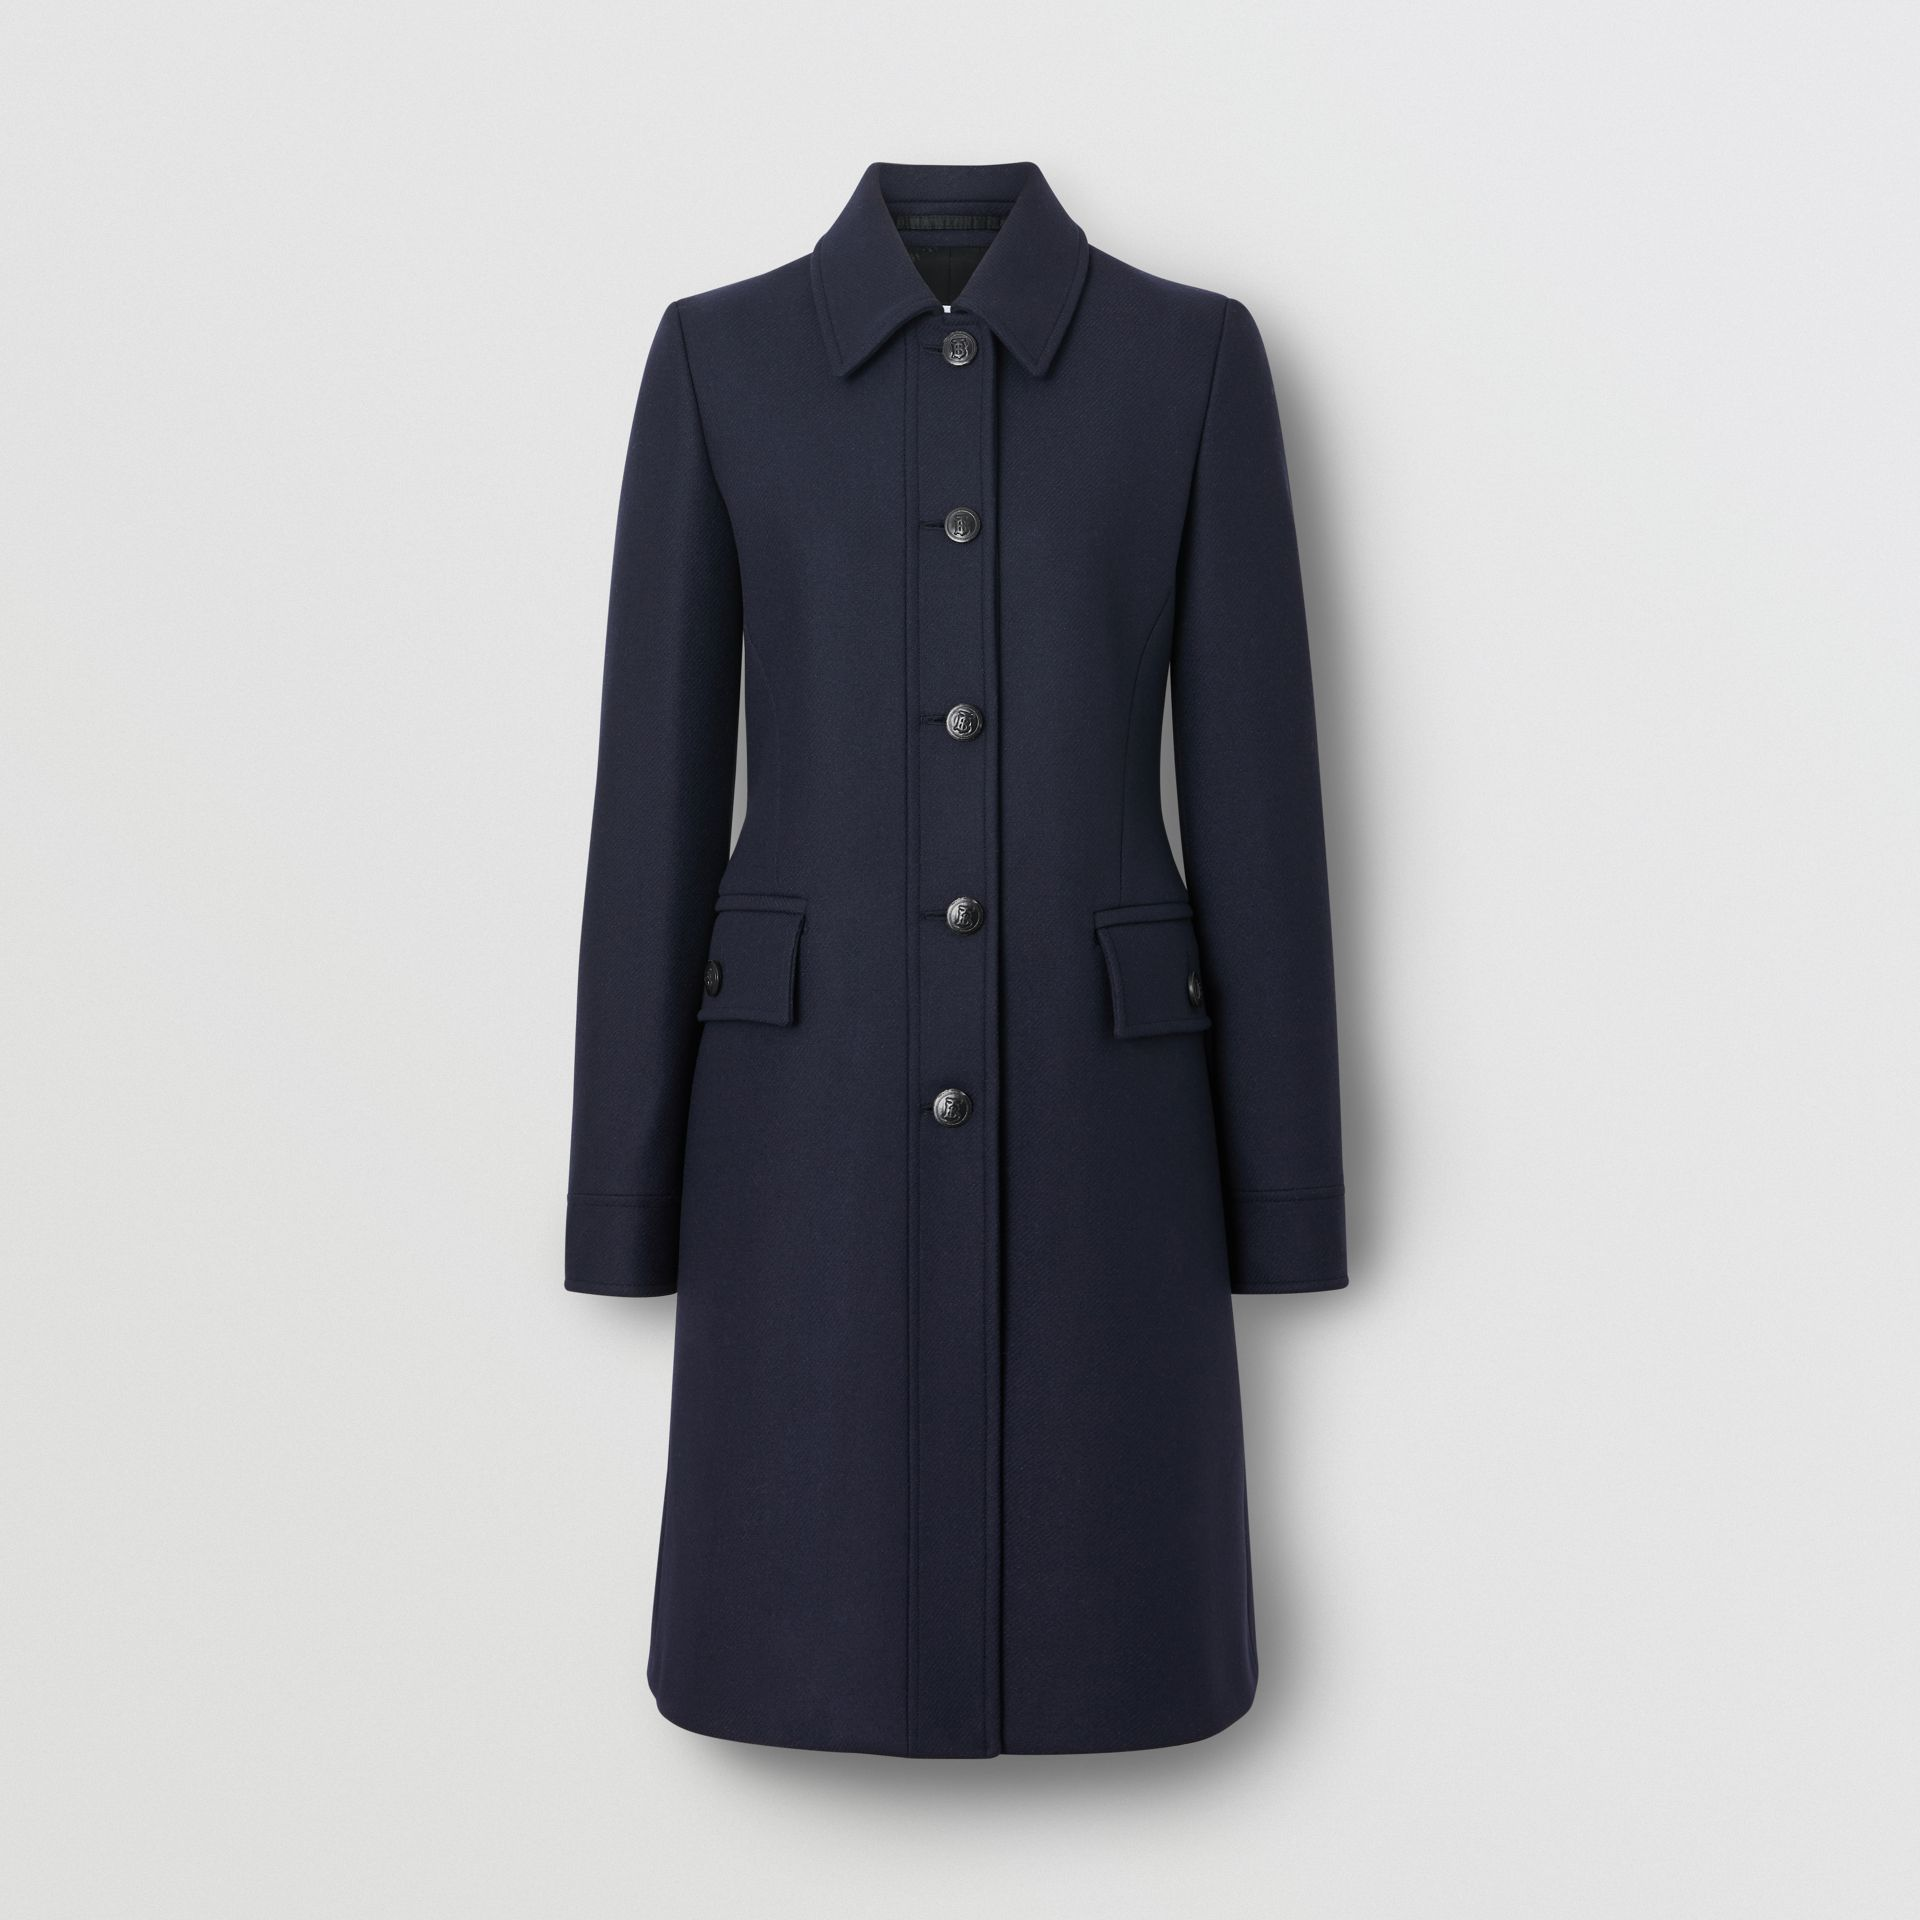 Double-faced Wool Cashmere Blend Coat in Navy - Women | Burberry Australia - gallery image 2